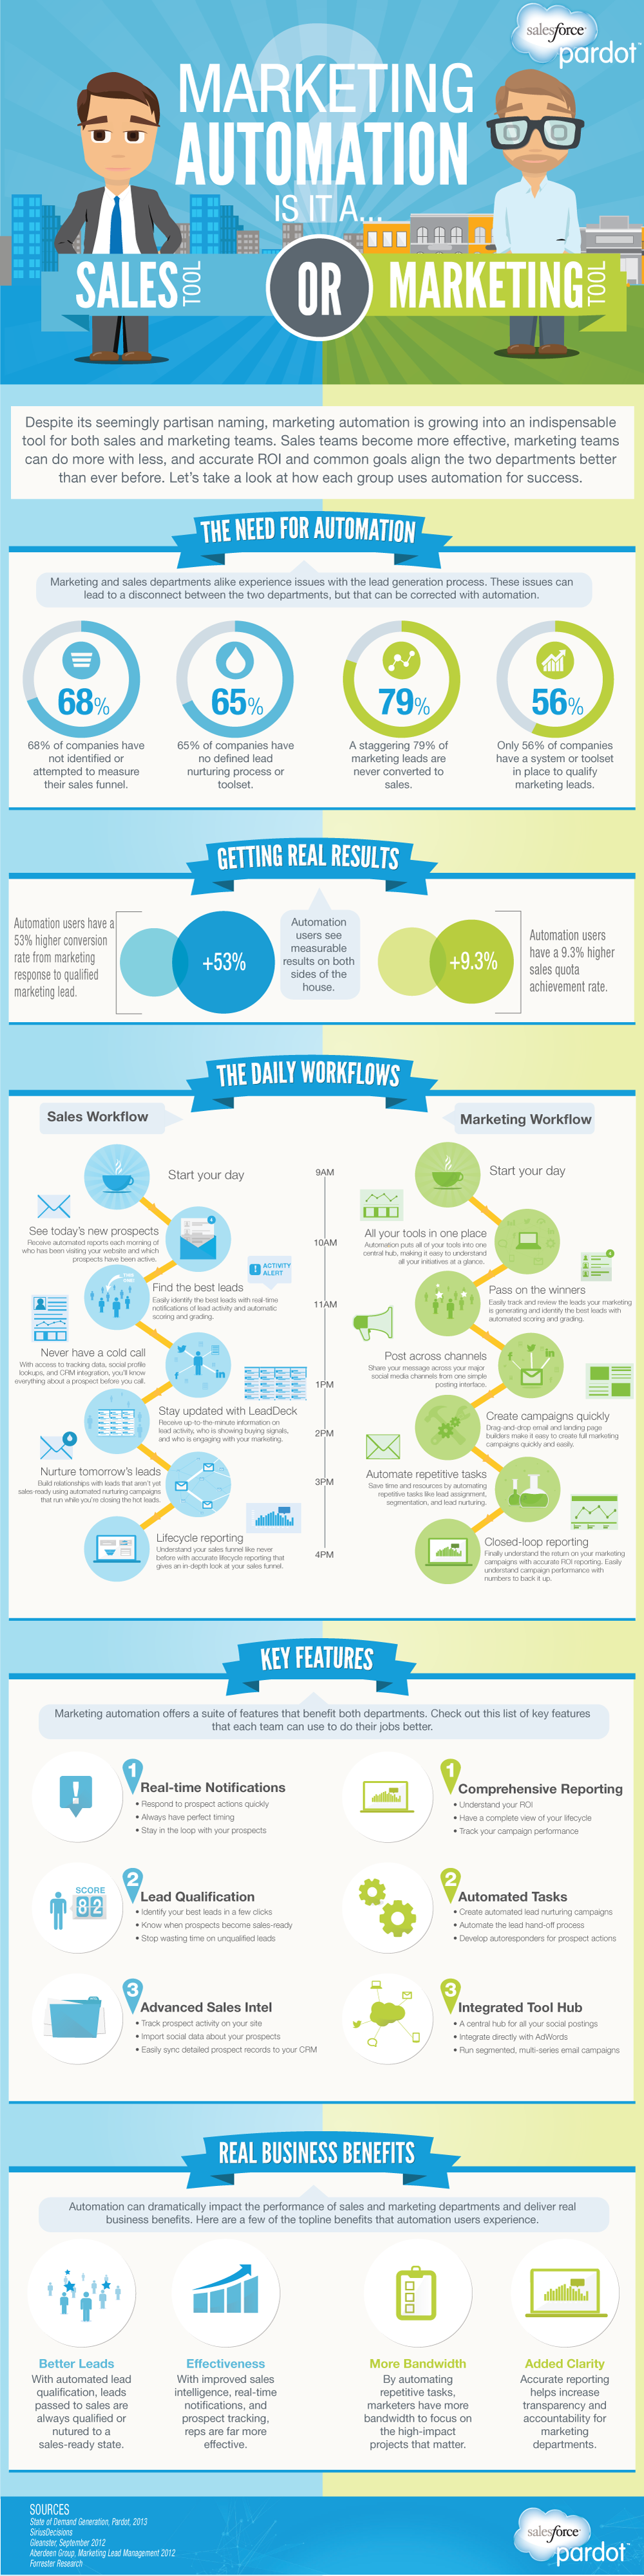 Marketing Automation: Sales or Marketing Tool? #infographic - An Infographic from Pardot